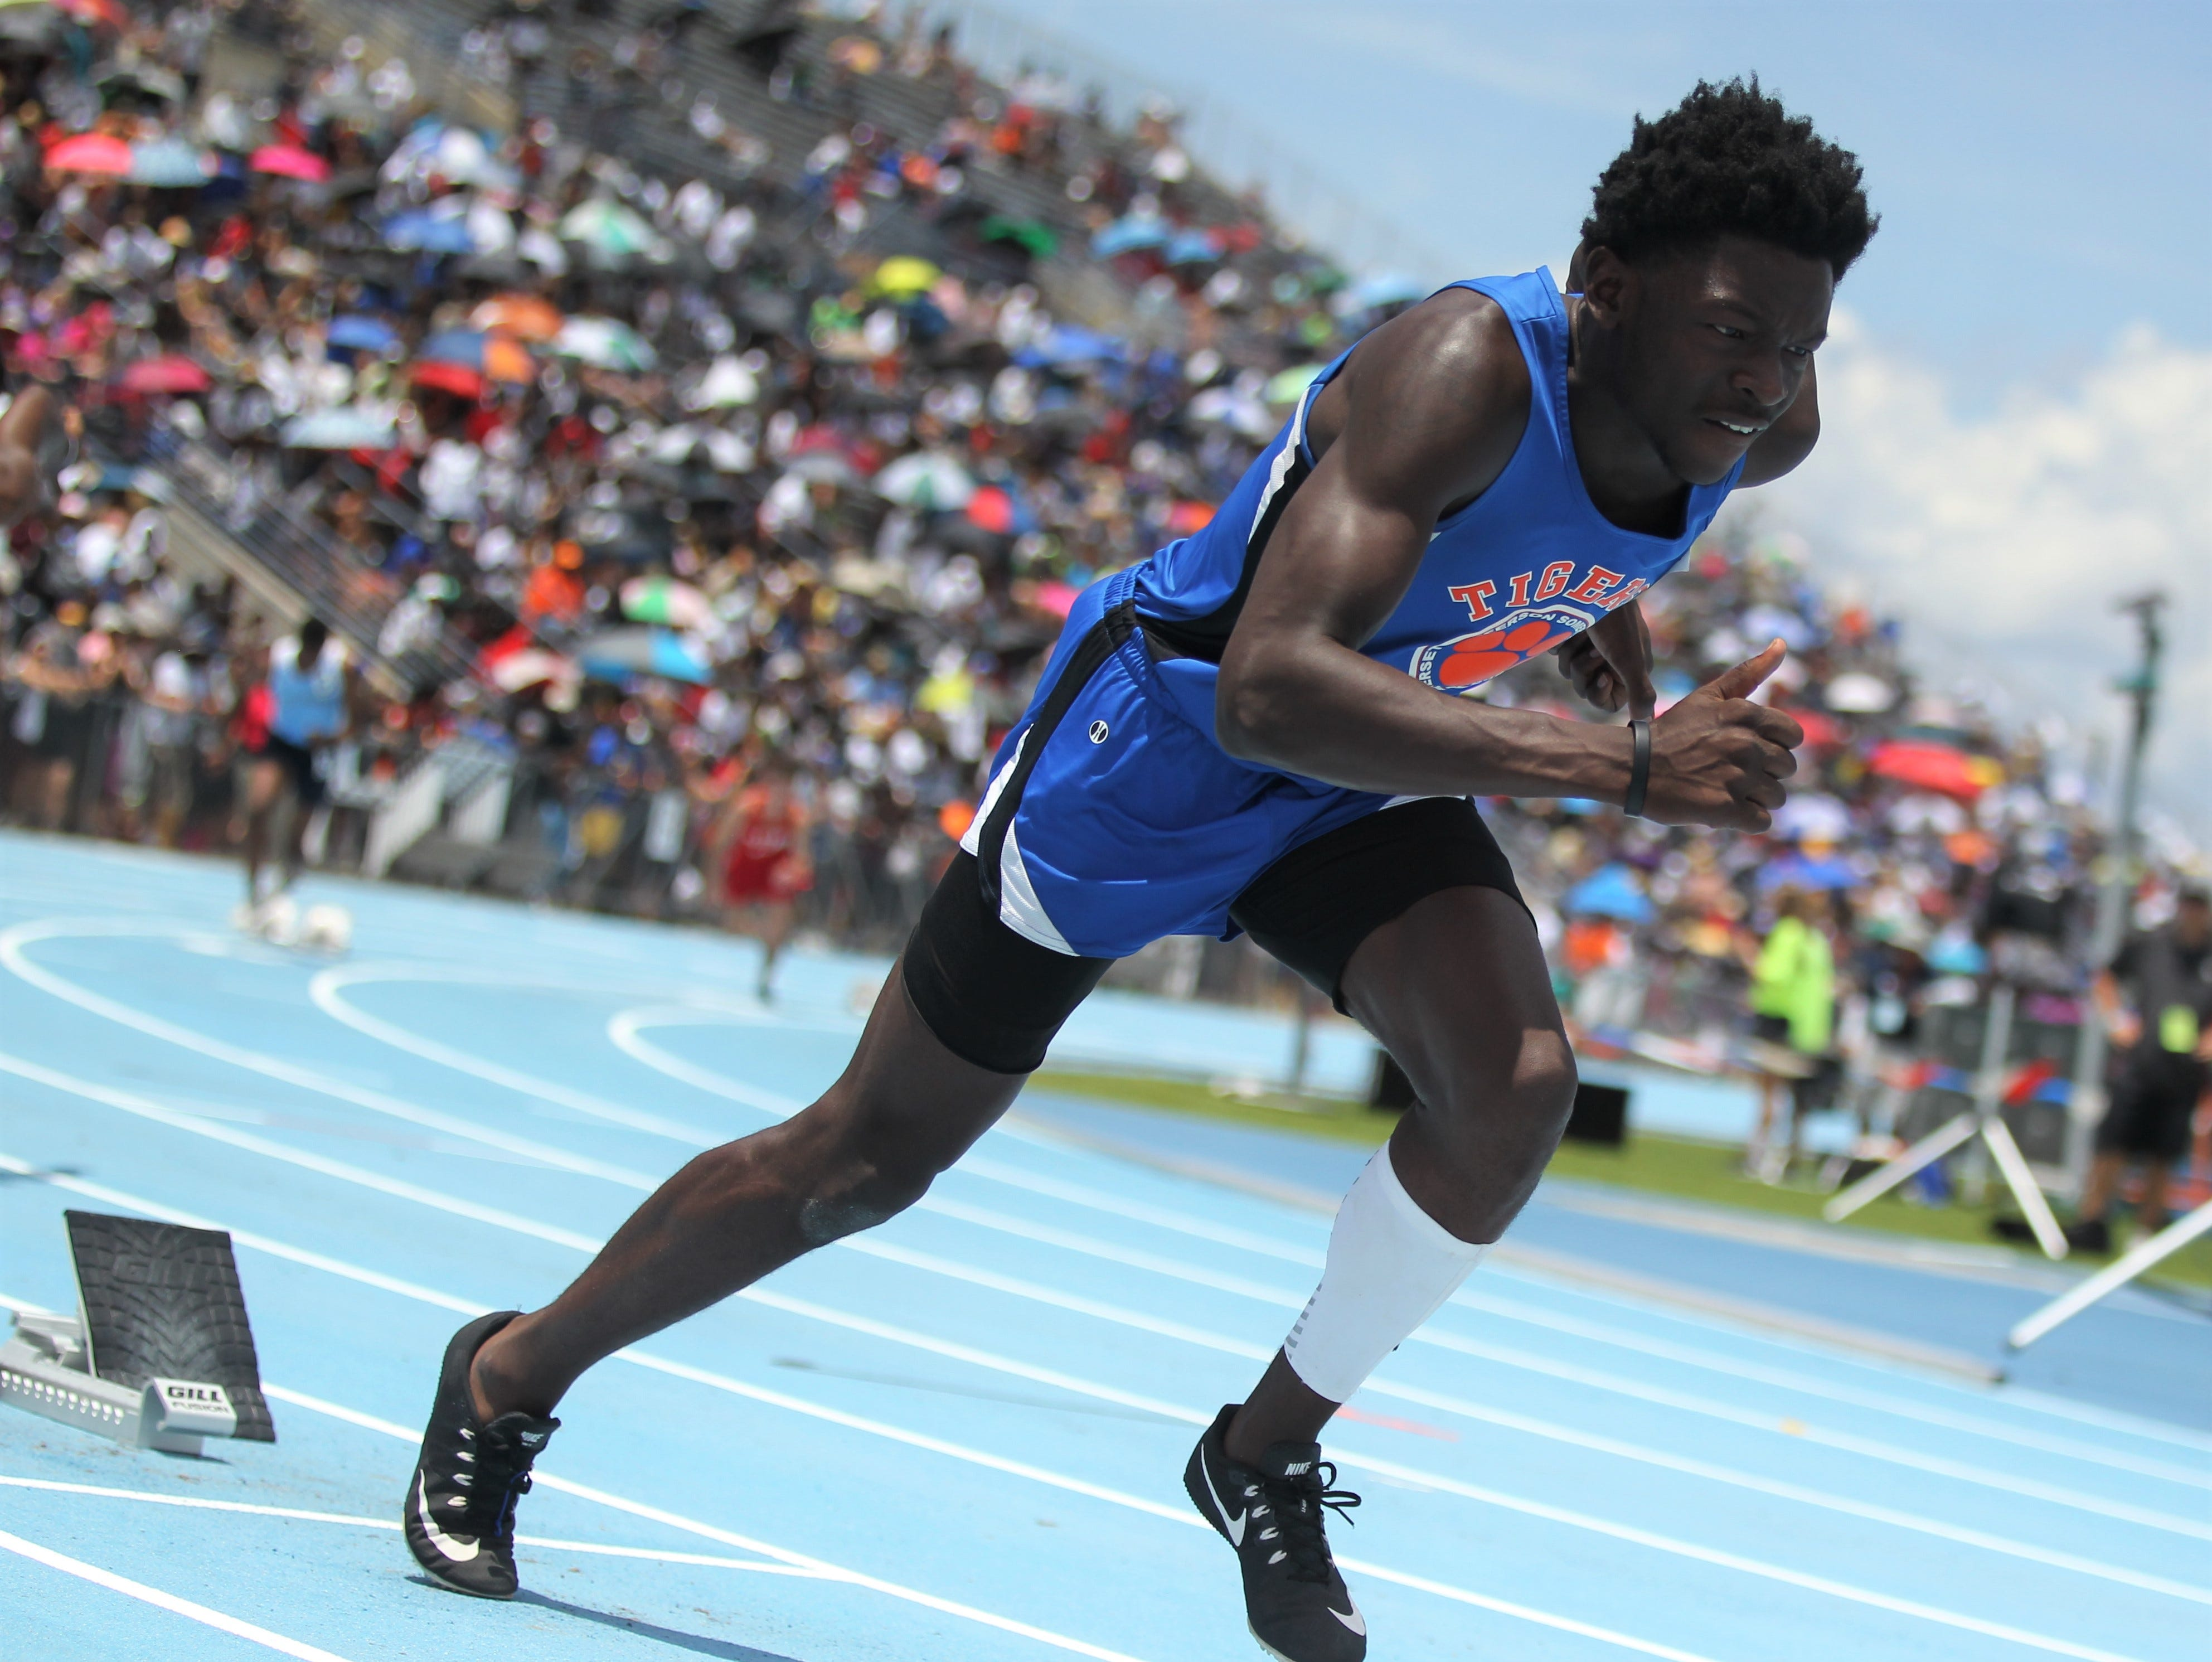 Jefferson County junior Detrevian Nealy took bronze in the Class 1A 400m dash at the FHSAA Track and Field State Championships at UNF's Hodges Stadium in Jacksonville on May 4, 2019.